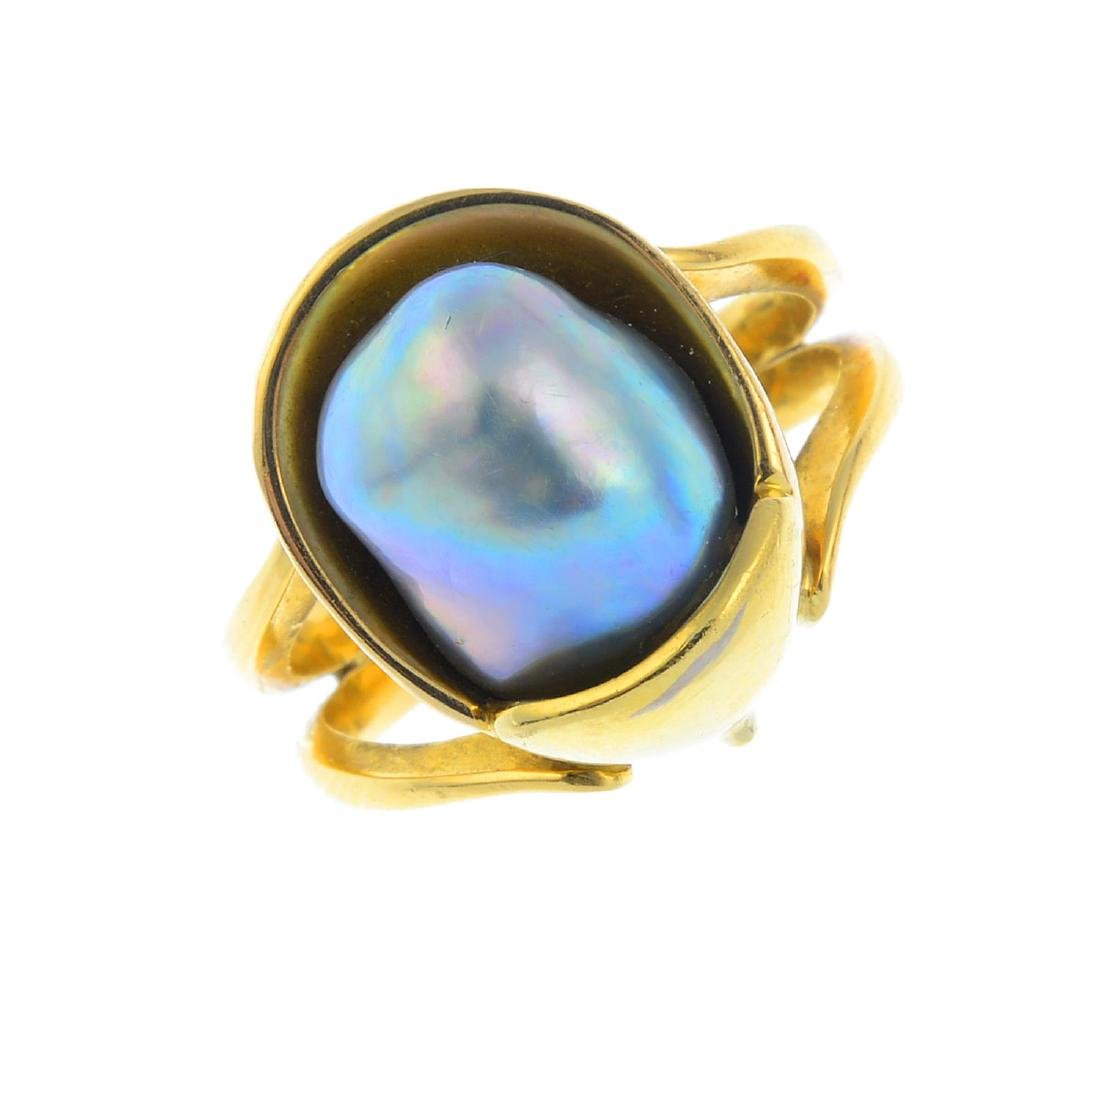 An 18ct gold cultured pearl dress ring. The baroque